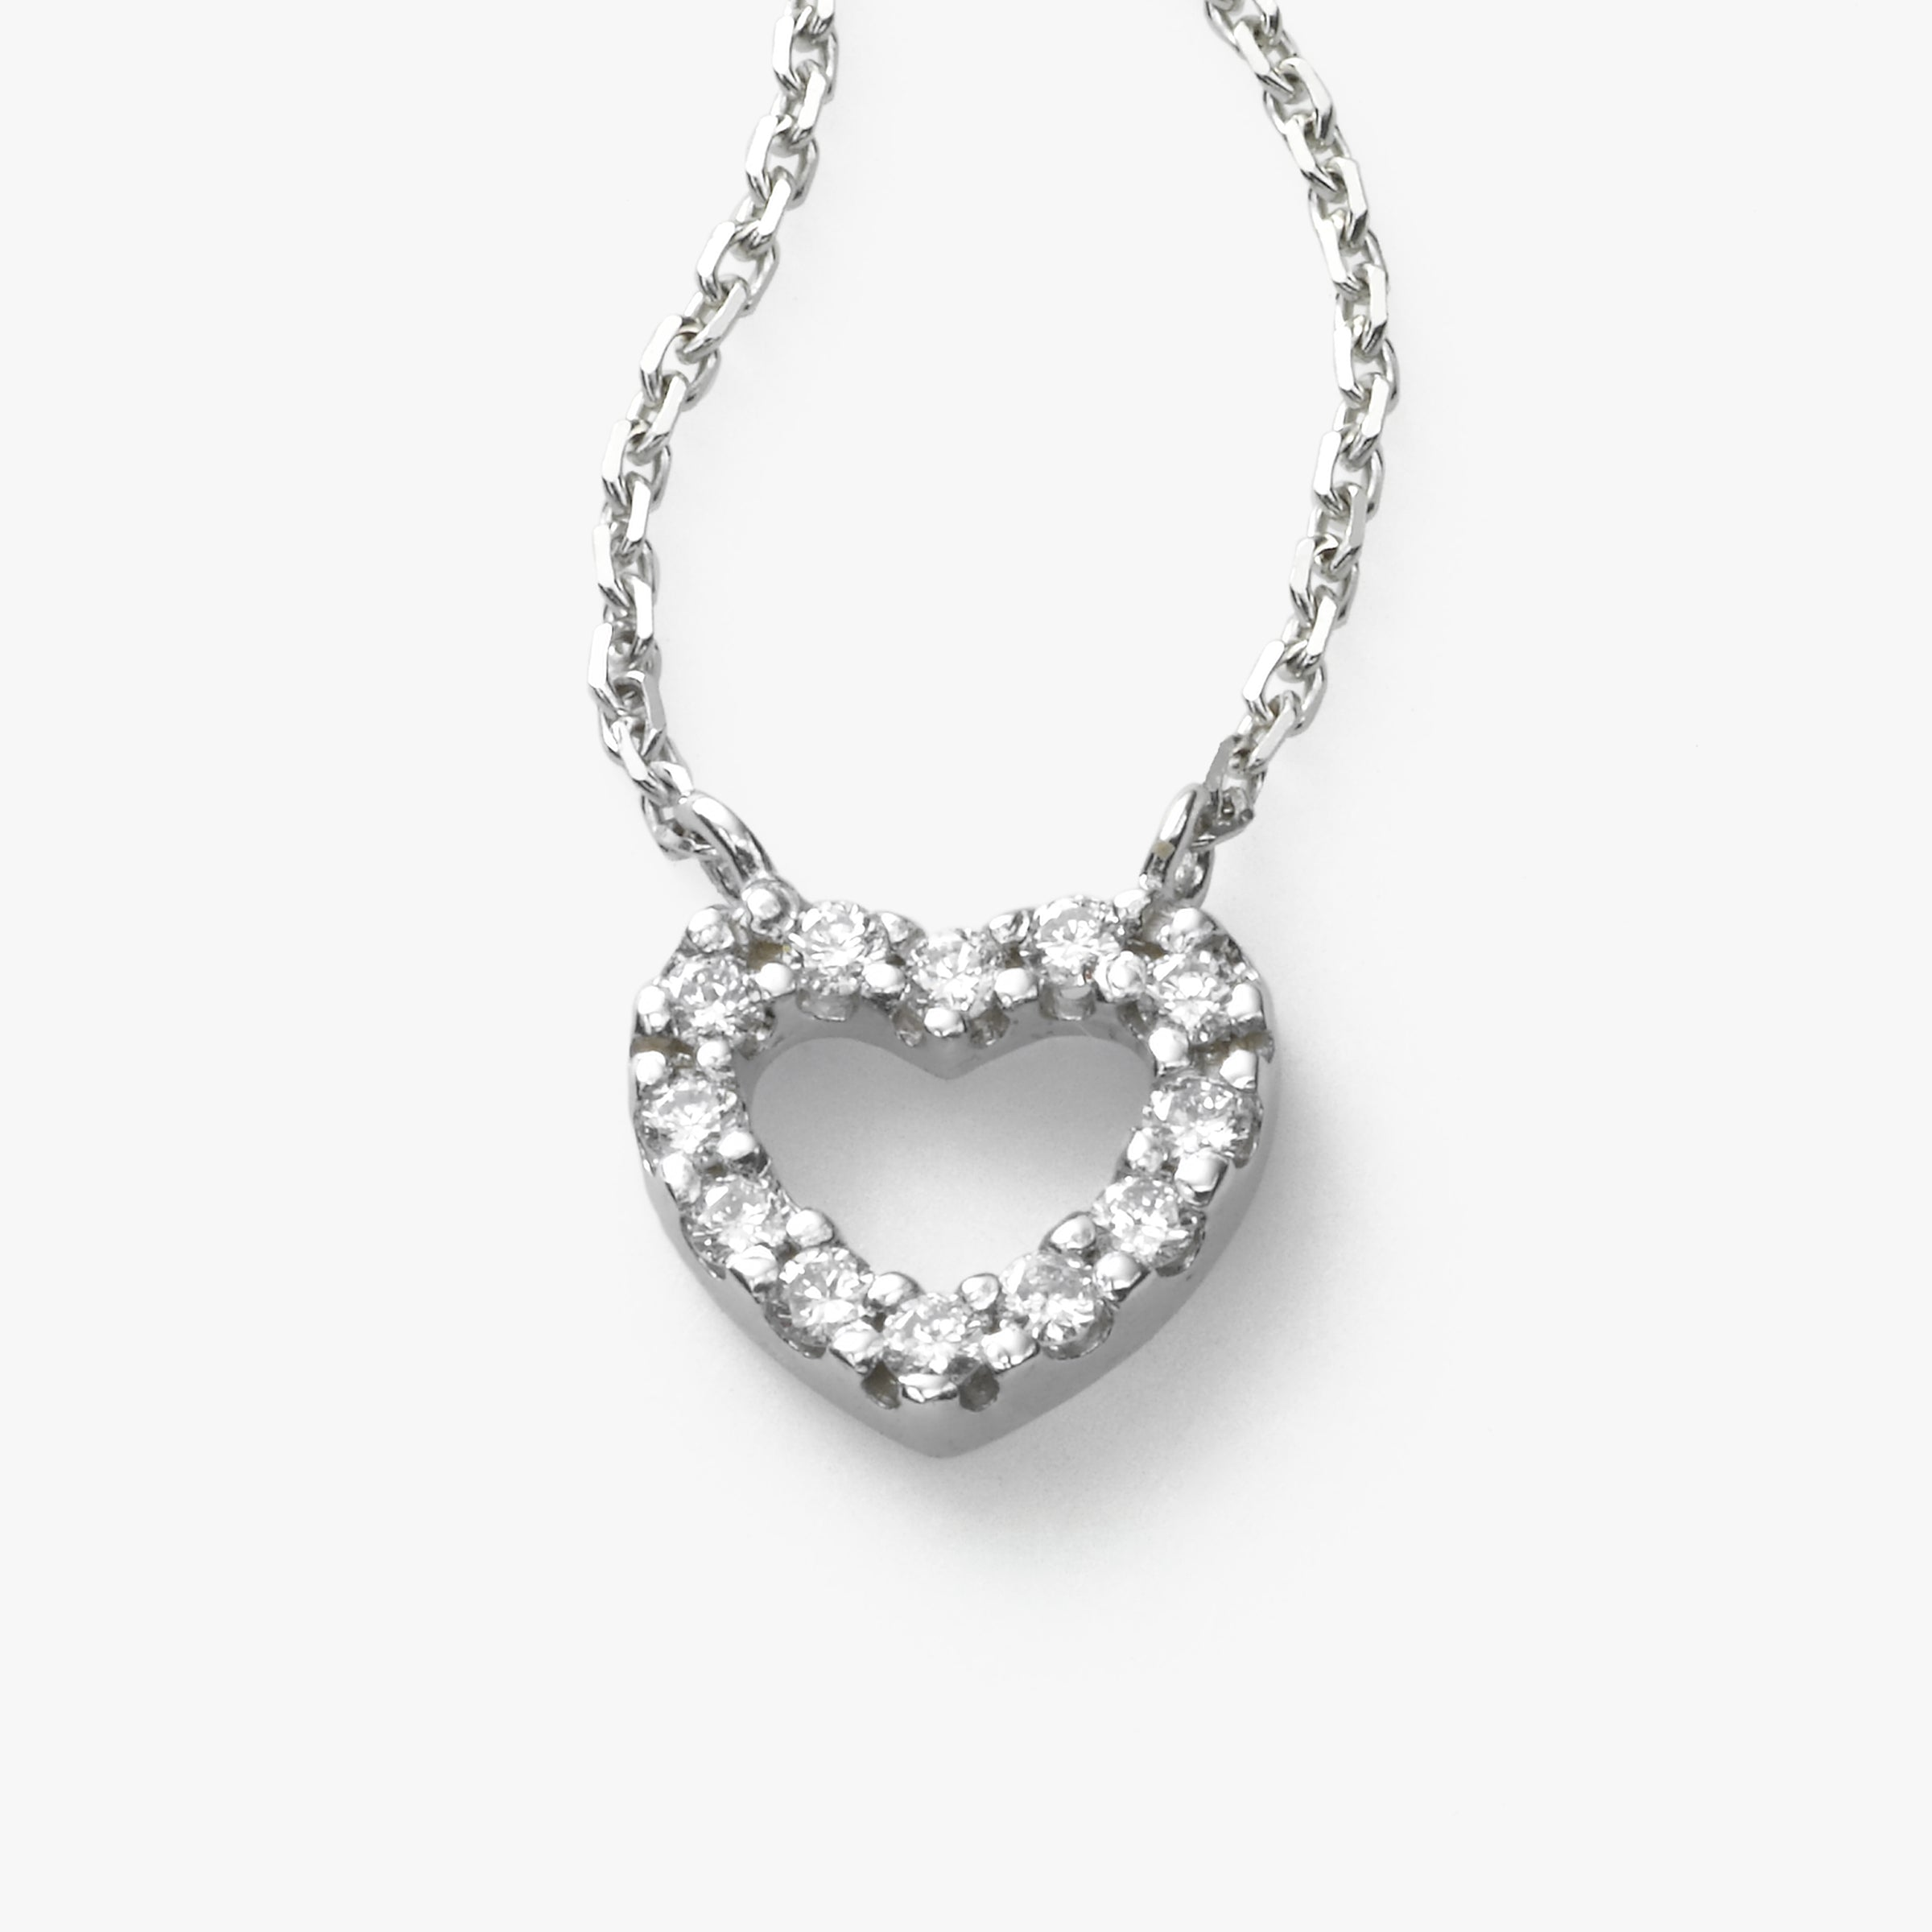 38353eacfe65 Fortunoff Fine Jewelry. Home; Kid's Small Diamond Heart Necklace, 14K White  Gold